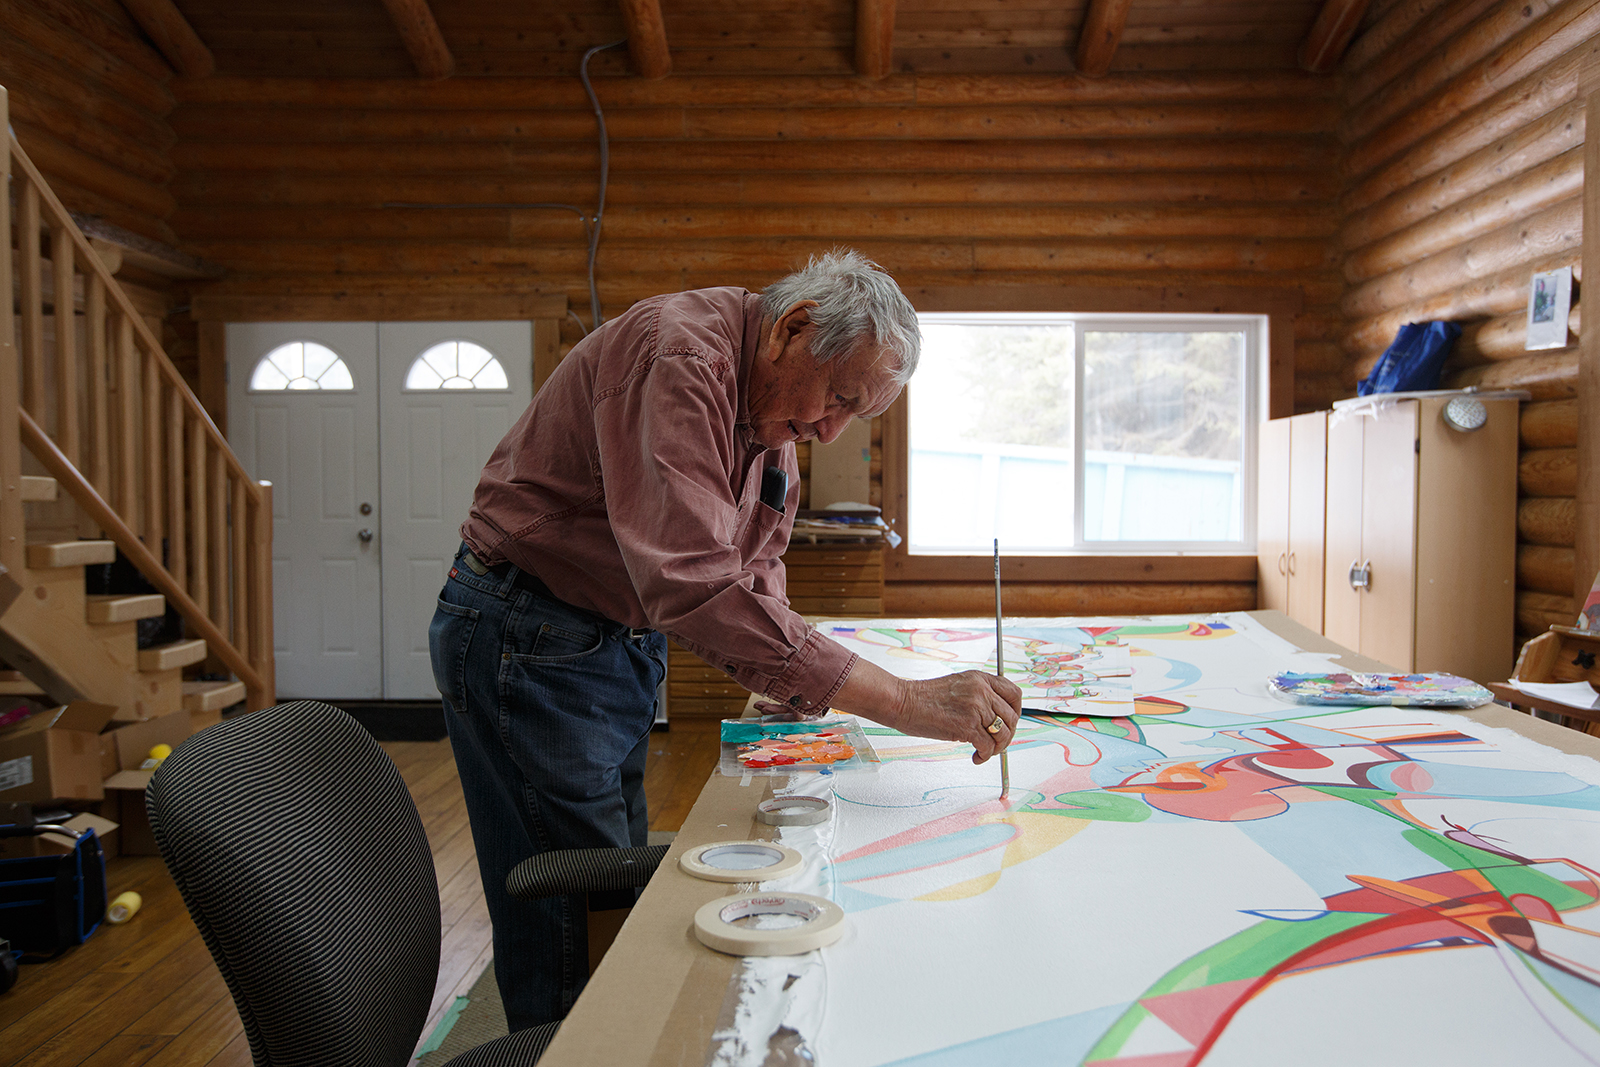 Alex Janvier by Amber Bracken for Canadian Geographic